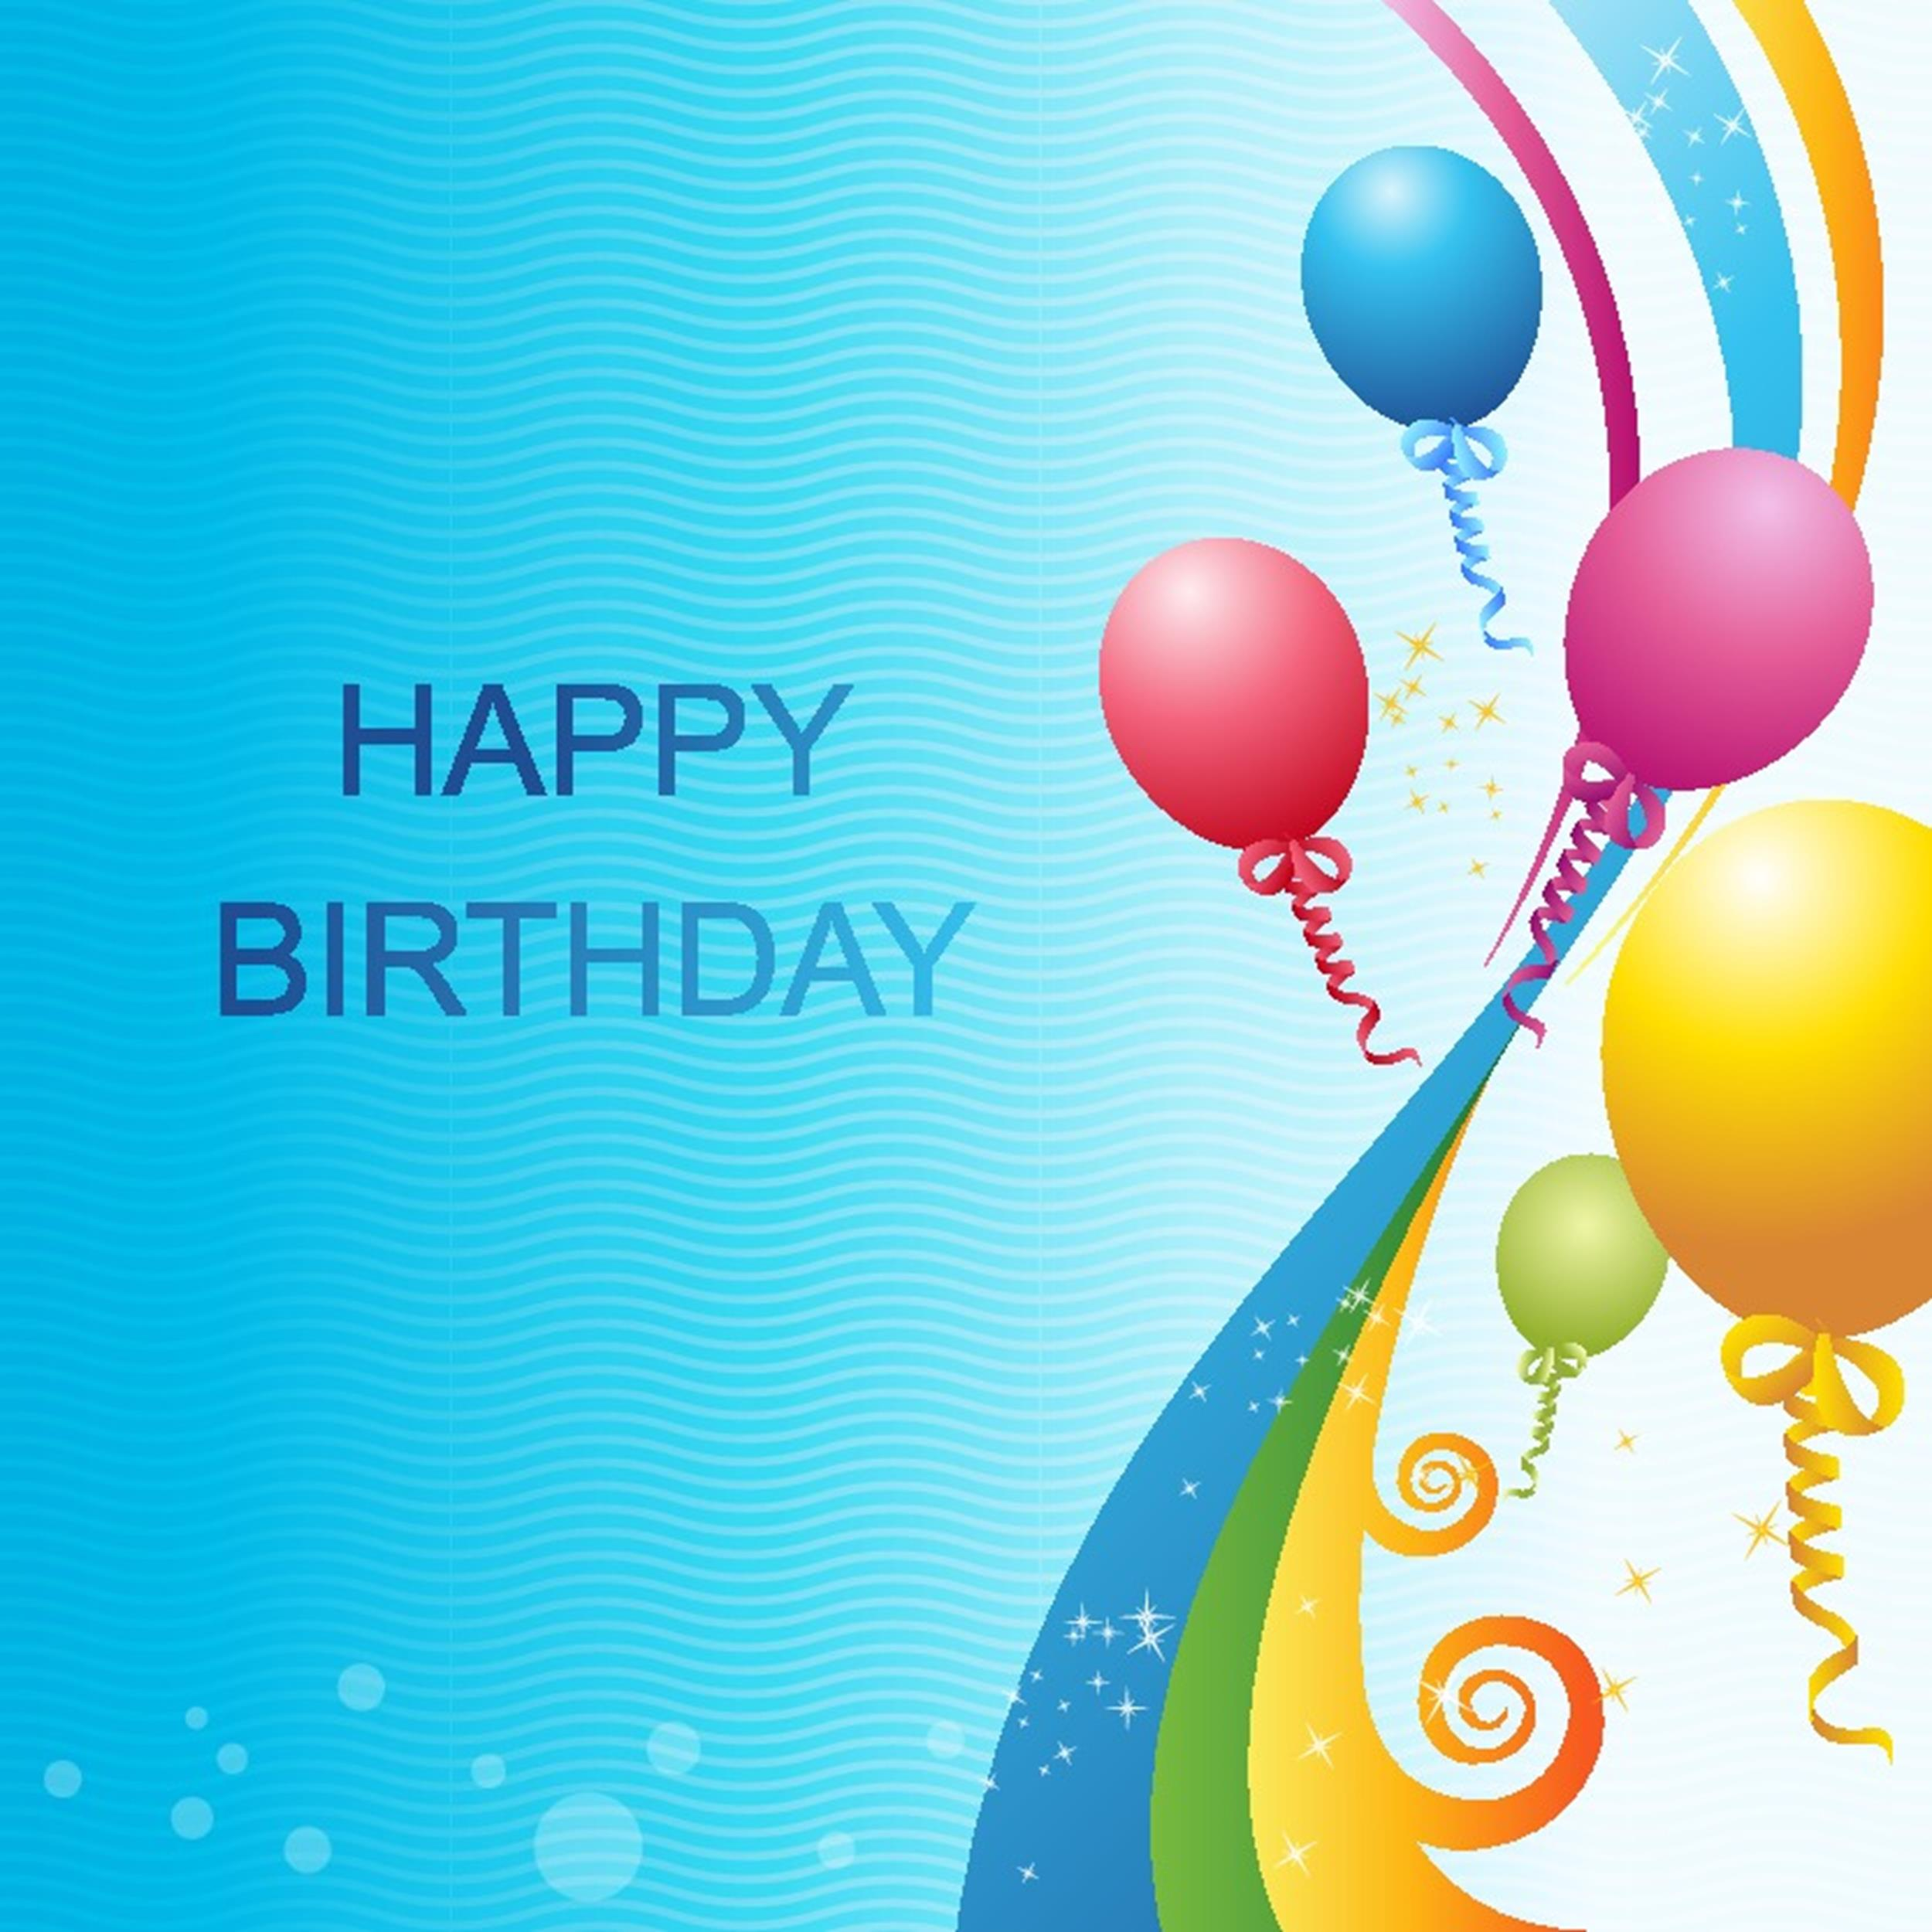 Free birthday card templates boatremyeaton free birthday card templates thecheapjerseys